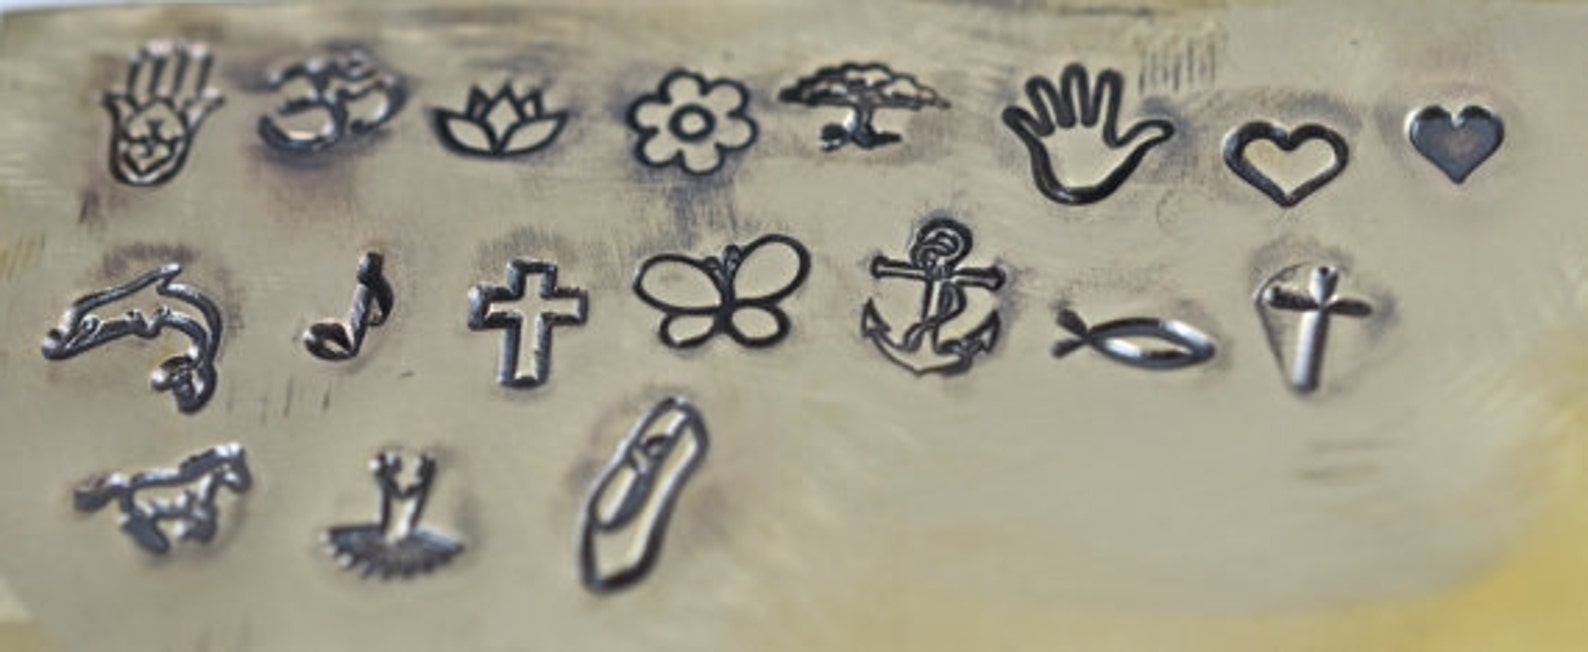 charm add on, initial, horse, dolphin, tree, cross, lotus flower, anchor, flower, hand, om, yoga charm, ballet shoe, pointe shoe